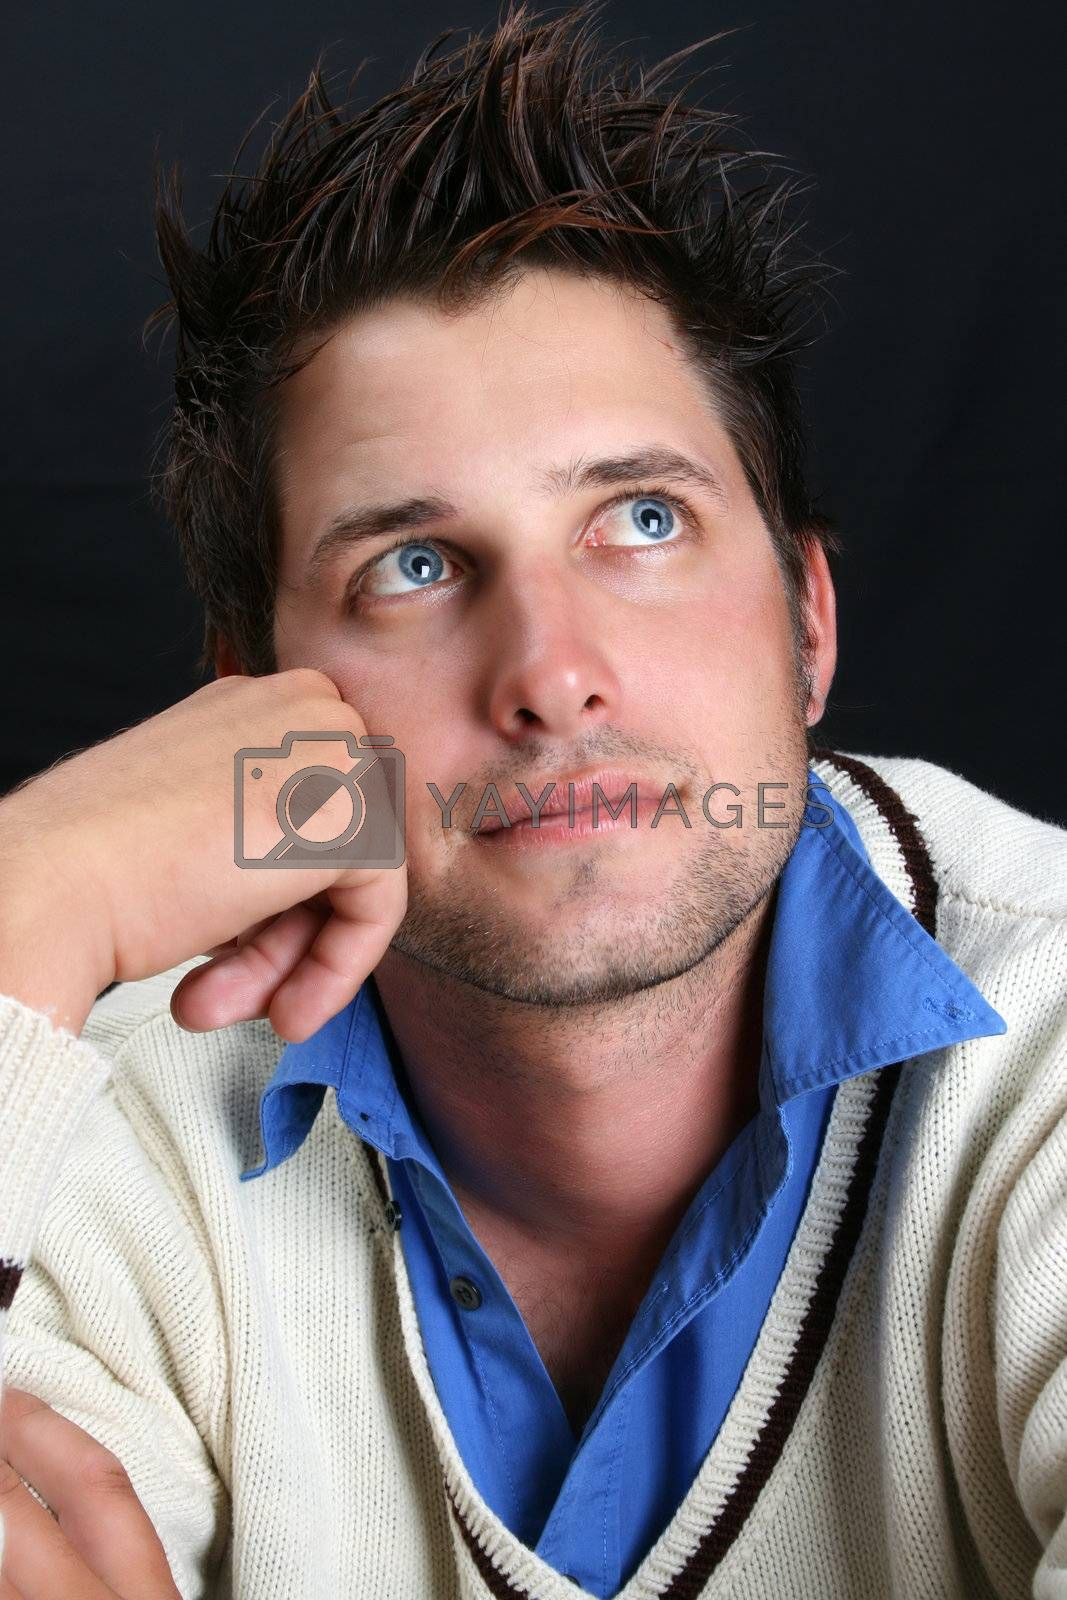 Male model in studio against black background